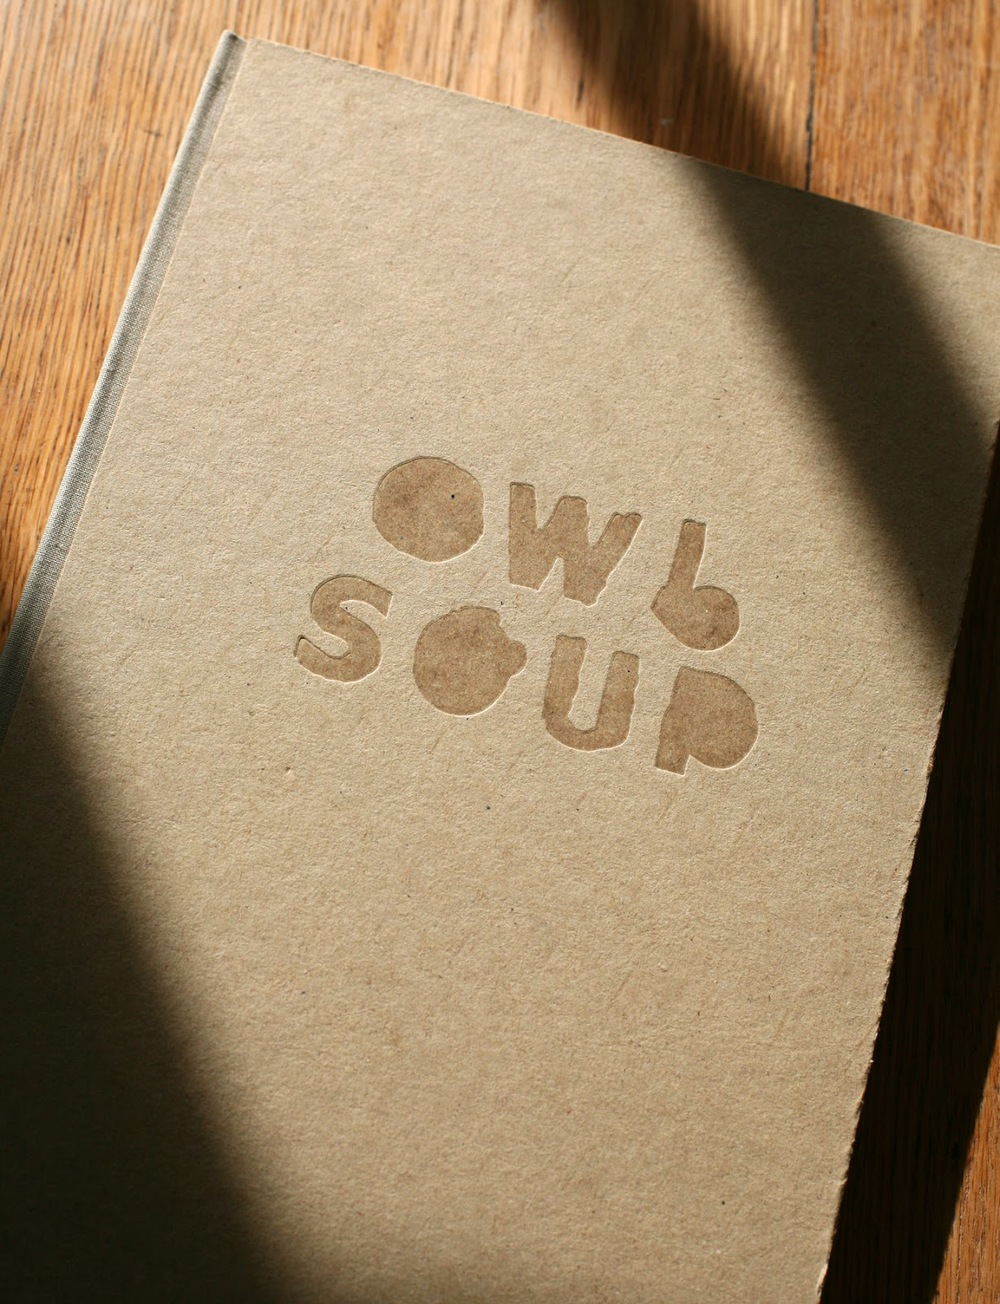 Owl Soup, book, 2014